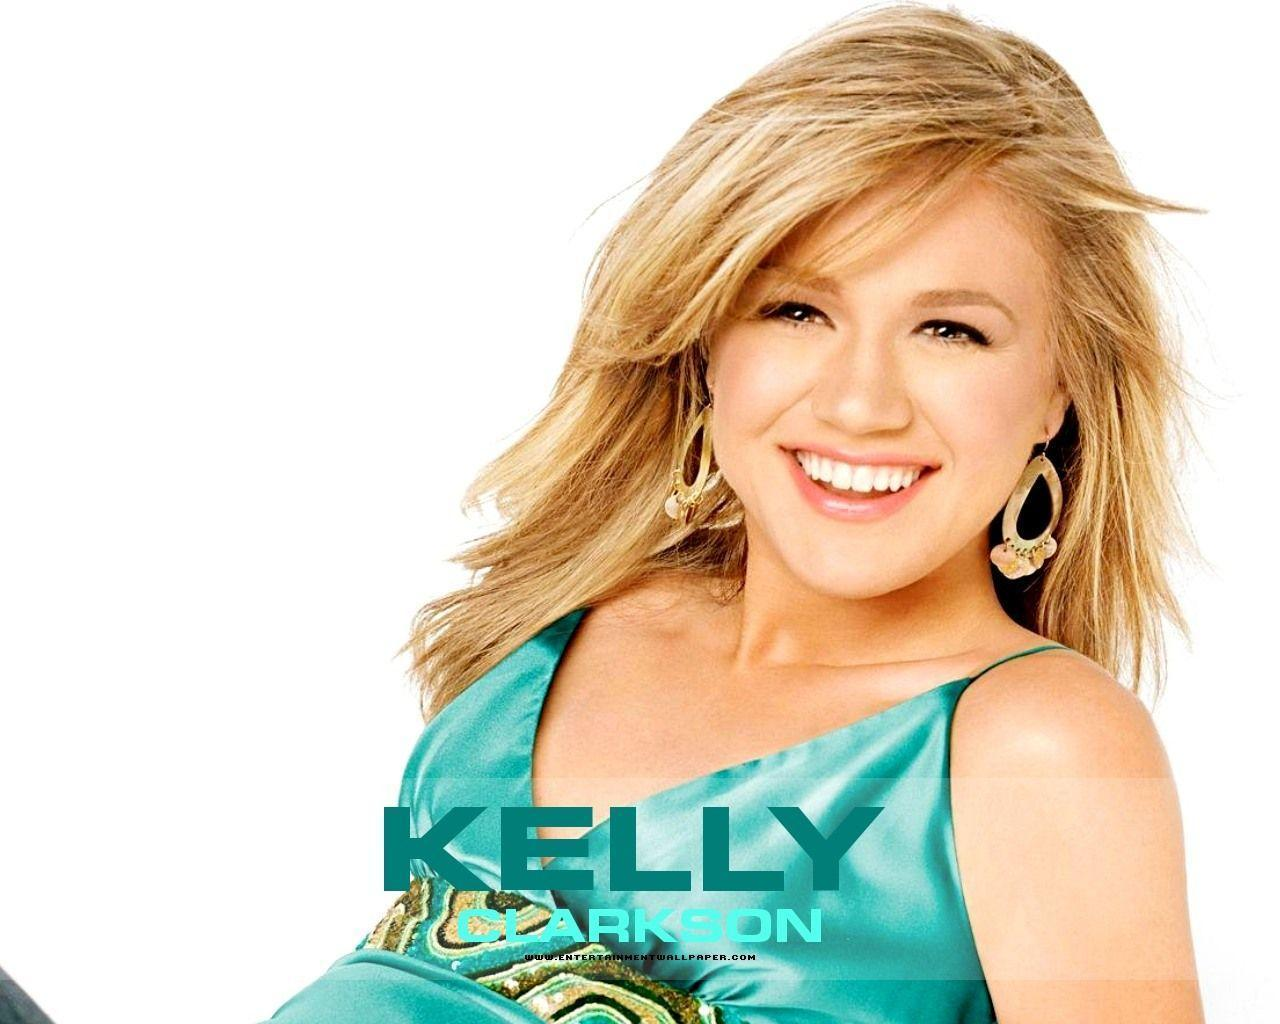 Hot Woman Wallpapers: Kelly Clarkson Wallpapers Pack 3